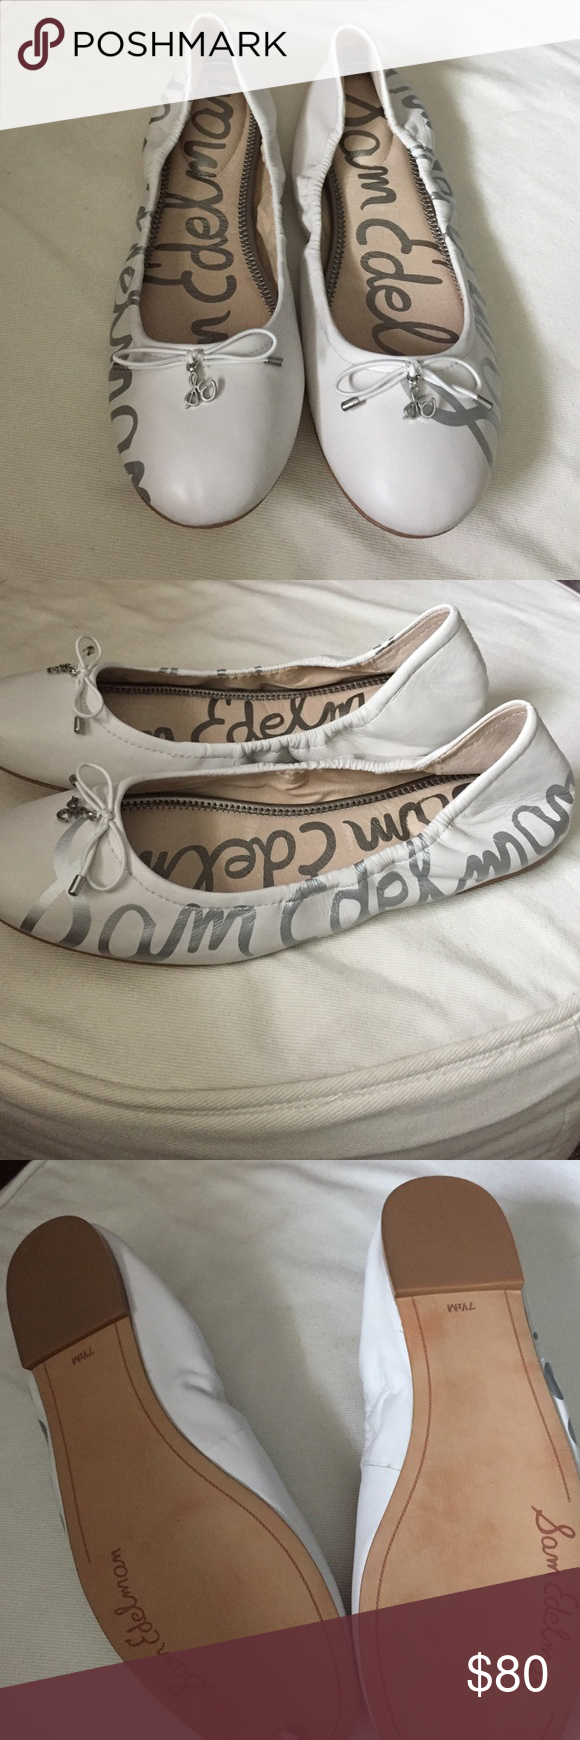 08473dbaab93d2 Sam Edelman white flats Sam Edelman Felicia ballet flats. White with silver  signature. Never been worn Sam Edelman Shoes Flats   Loafers